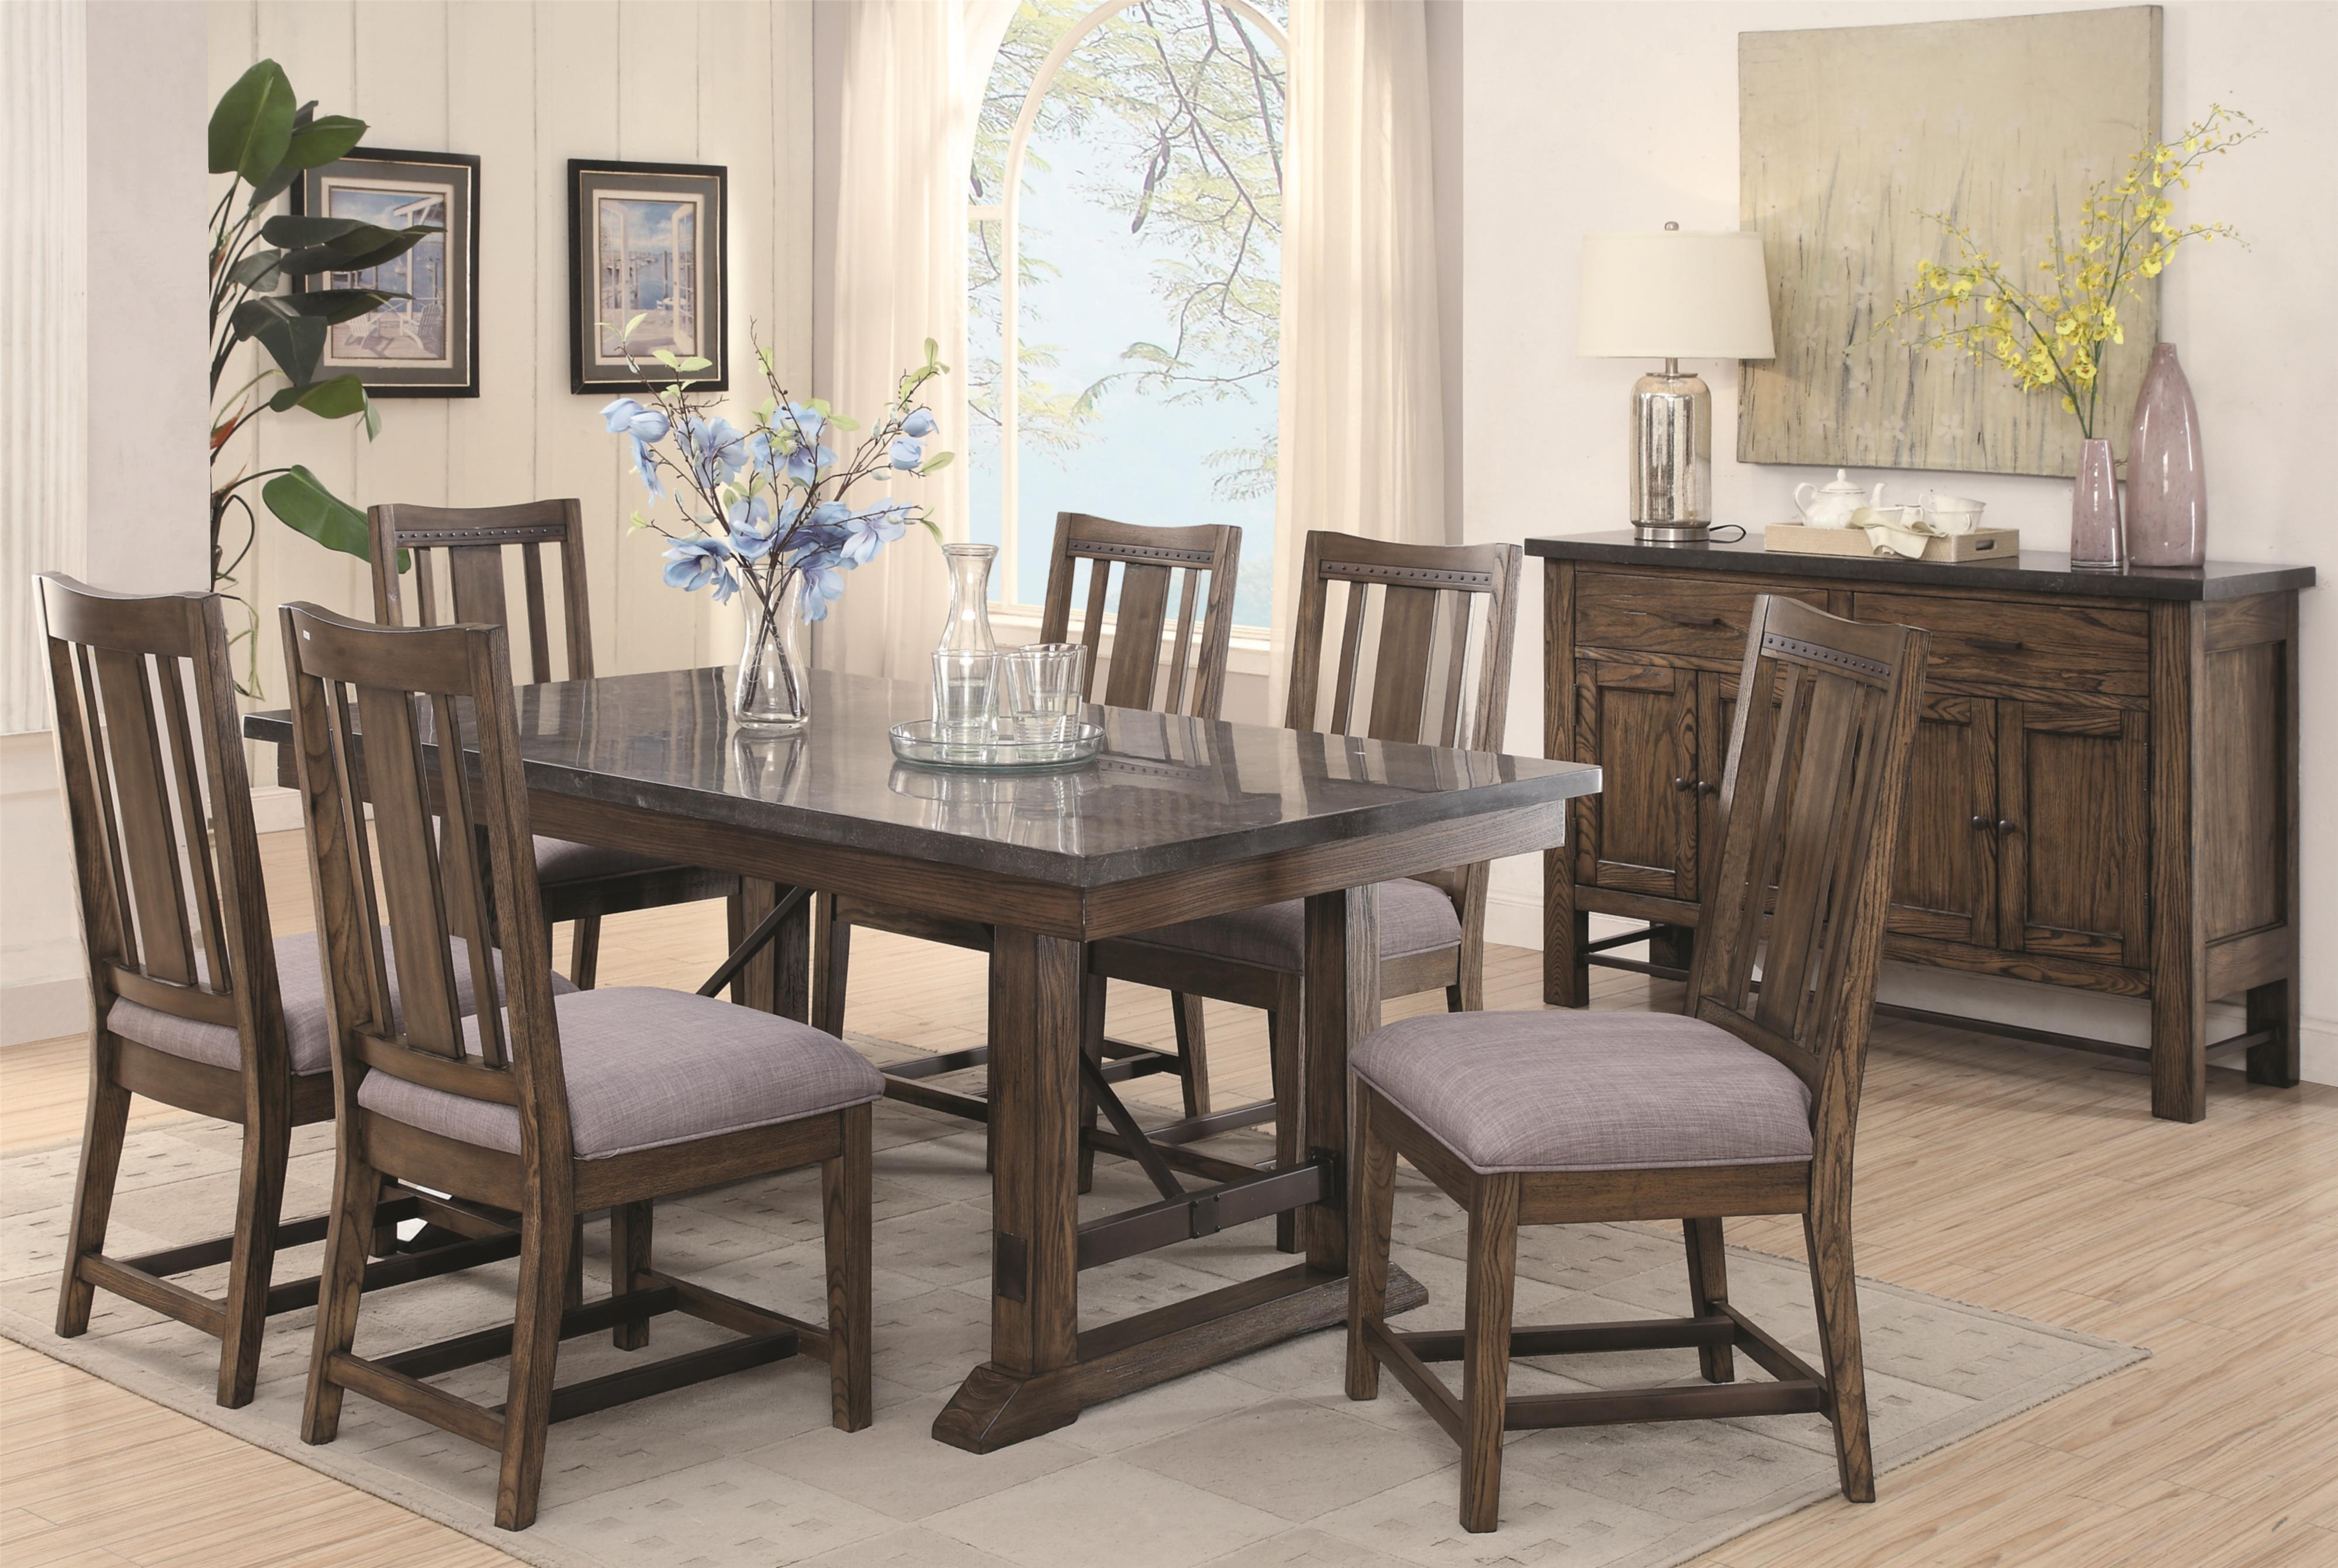 Rustic dining table set - Coaster Willowbrook Seven Piece Rustic Dining Set With Bluestone Table And Solid Wood Chairs Dunk Bright Furniture Dining 7 Or More Piece Sets